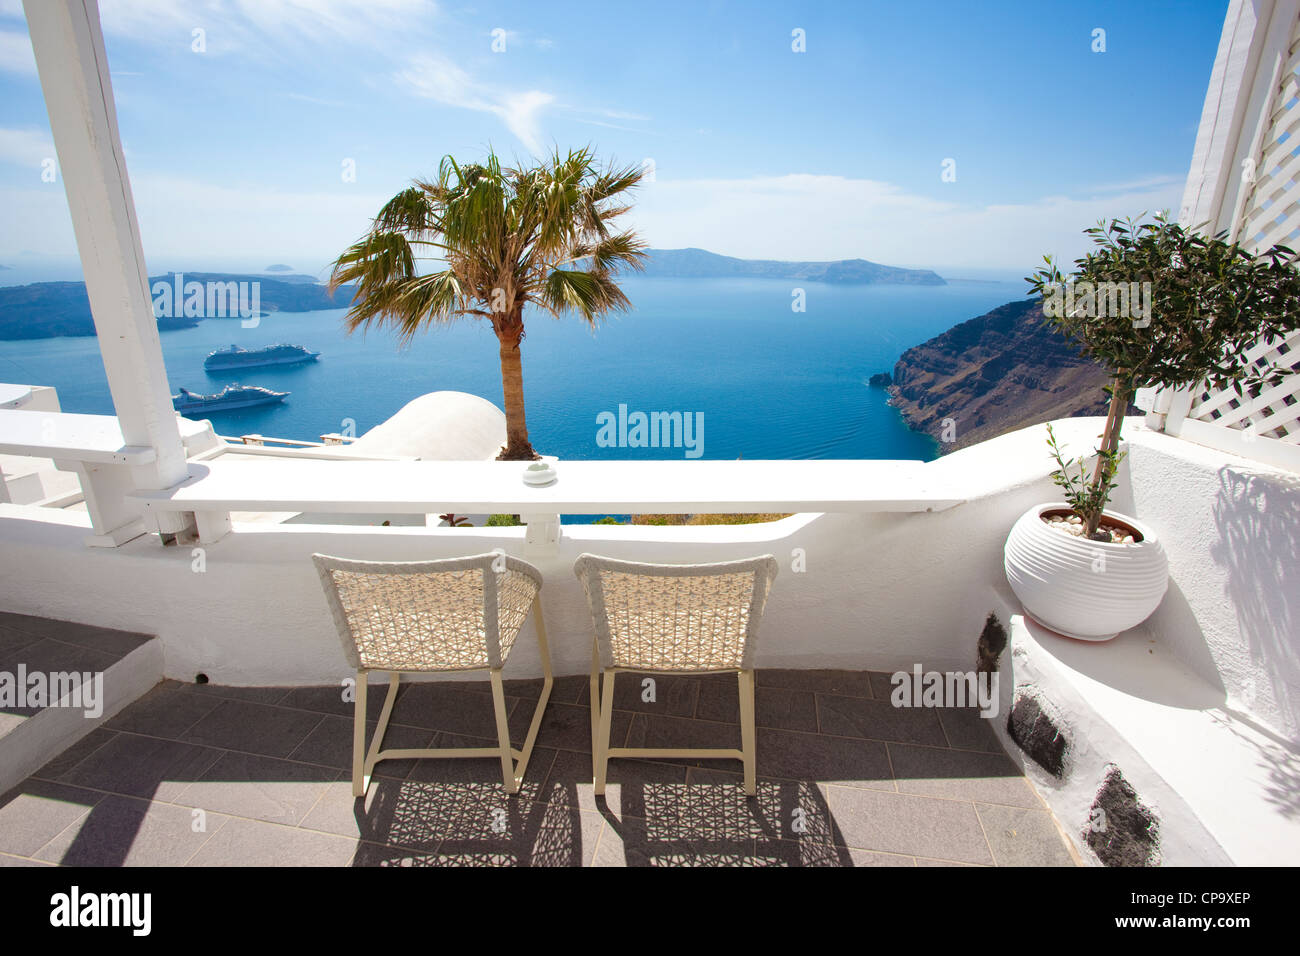 View from Millhouses studios looking out onto the Aegean Sea, Firostephani, Santorini, Cyclades, Greece Stock Photo